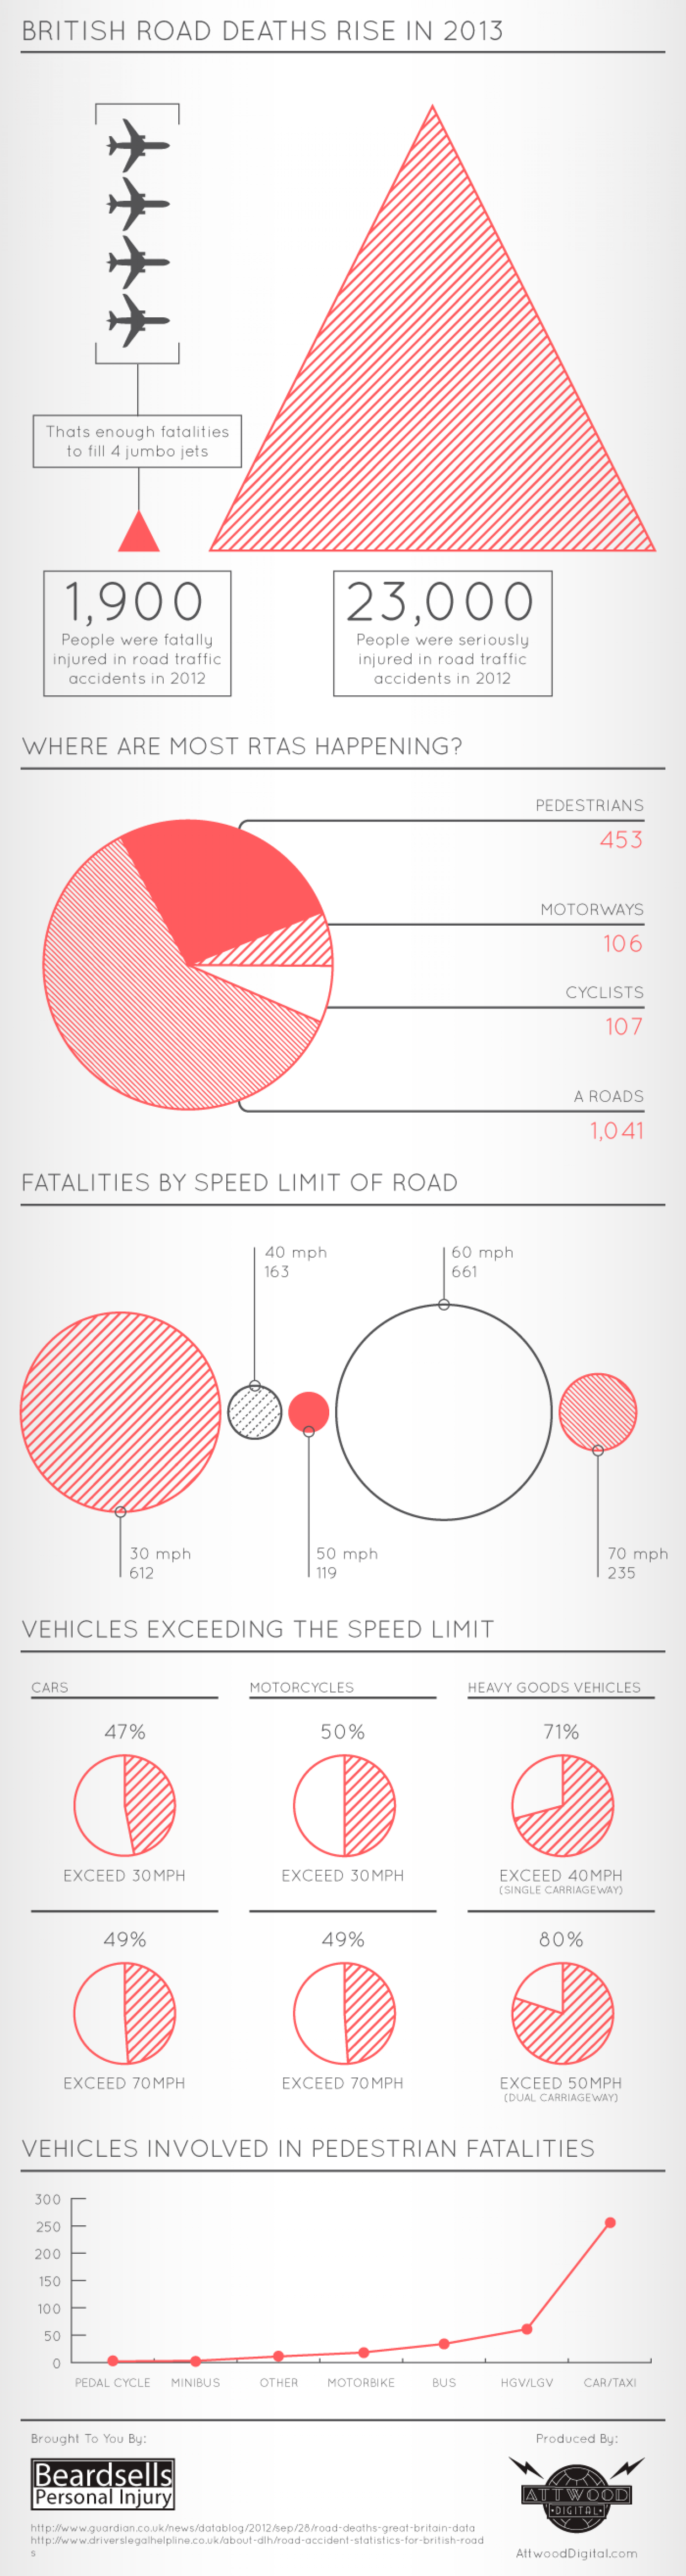 British Road Deaths Rise In 2013 Infographic